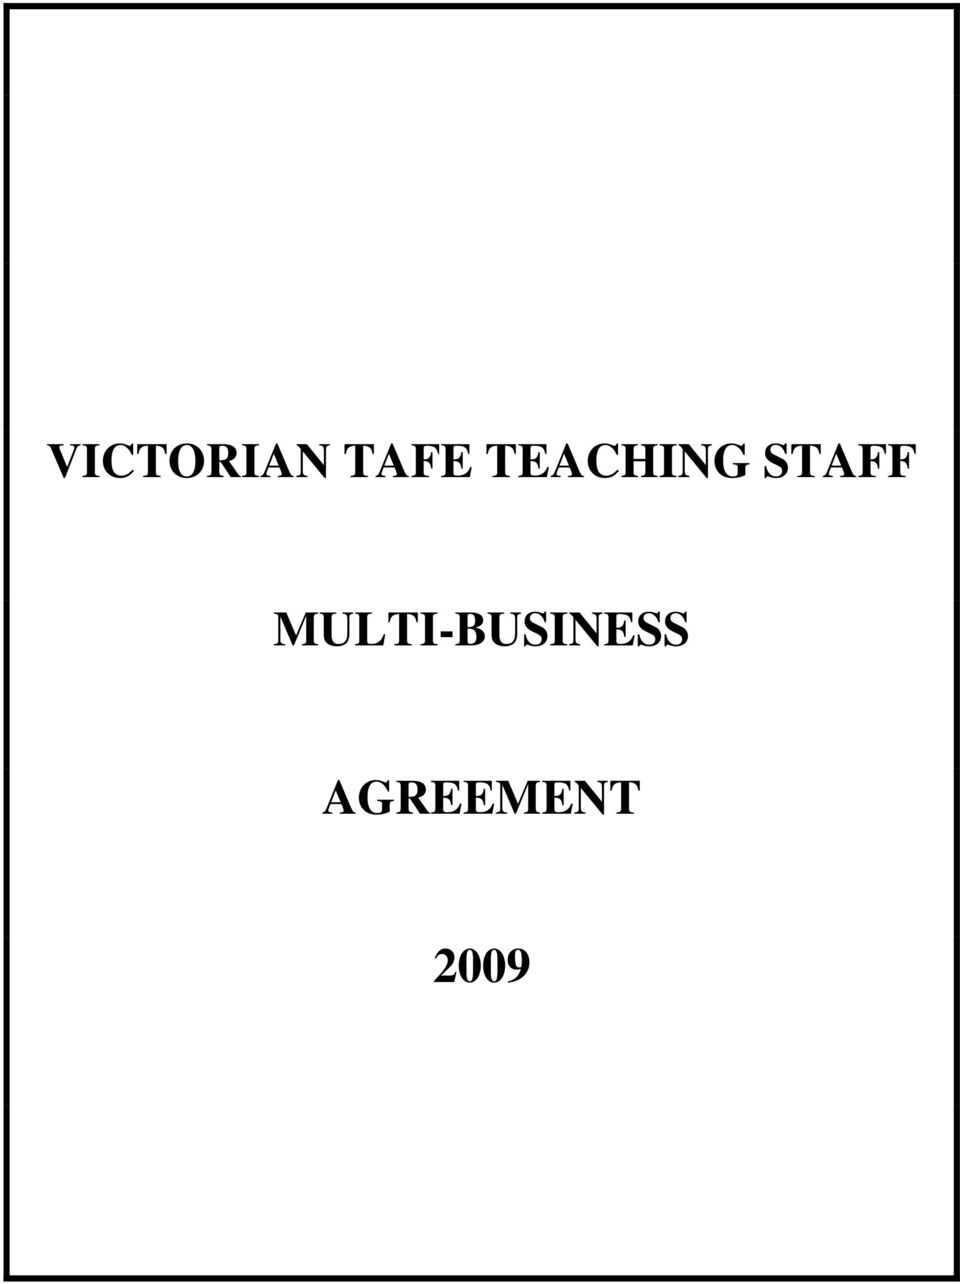 Victorian tafe teaching staff multi business agreement pdf title parties bound application and scope of the agreement date and period of operation relationship to parent award and memorandum of understanding spiritdancerdesigns Choice Image